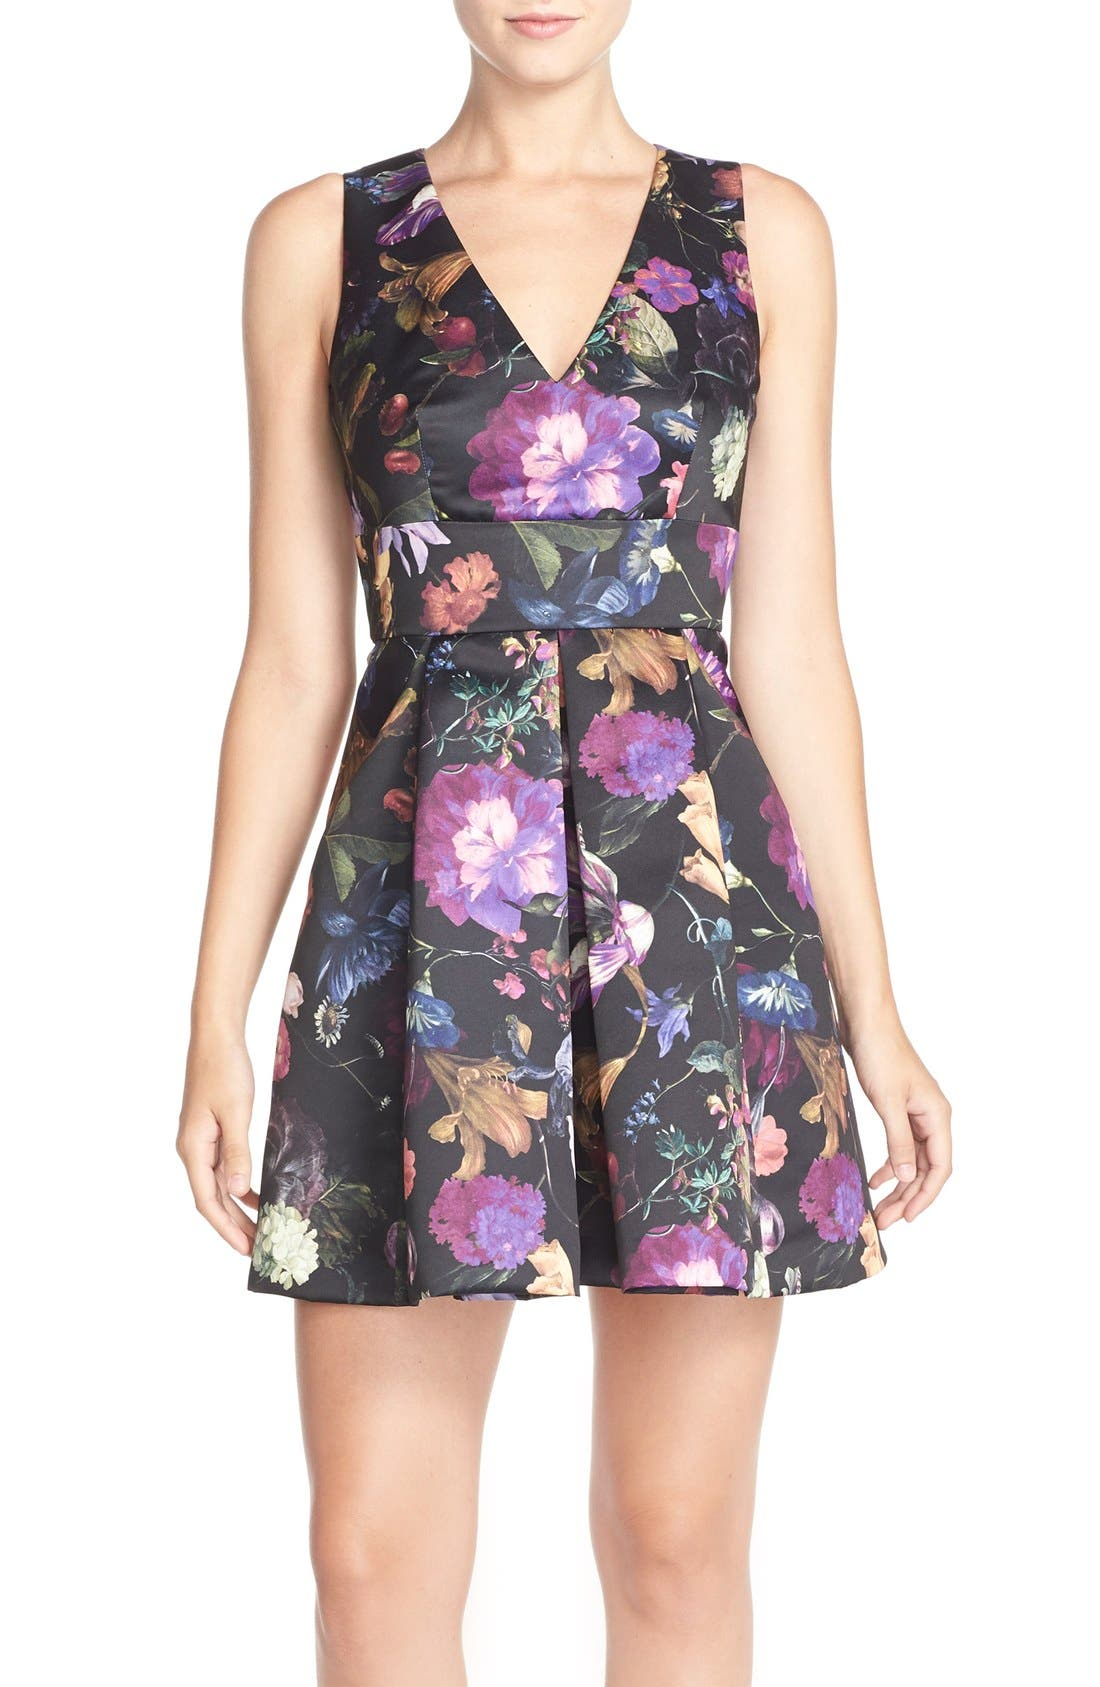 Alternate Image 1 Selected - CythiaRowley'Winter' Floral Print Woven Fit & Flare Dress